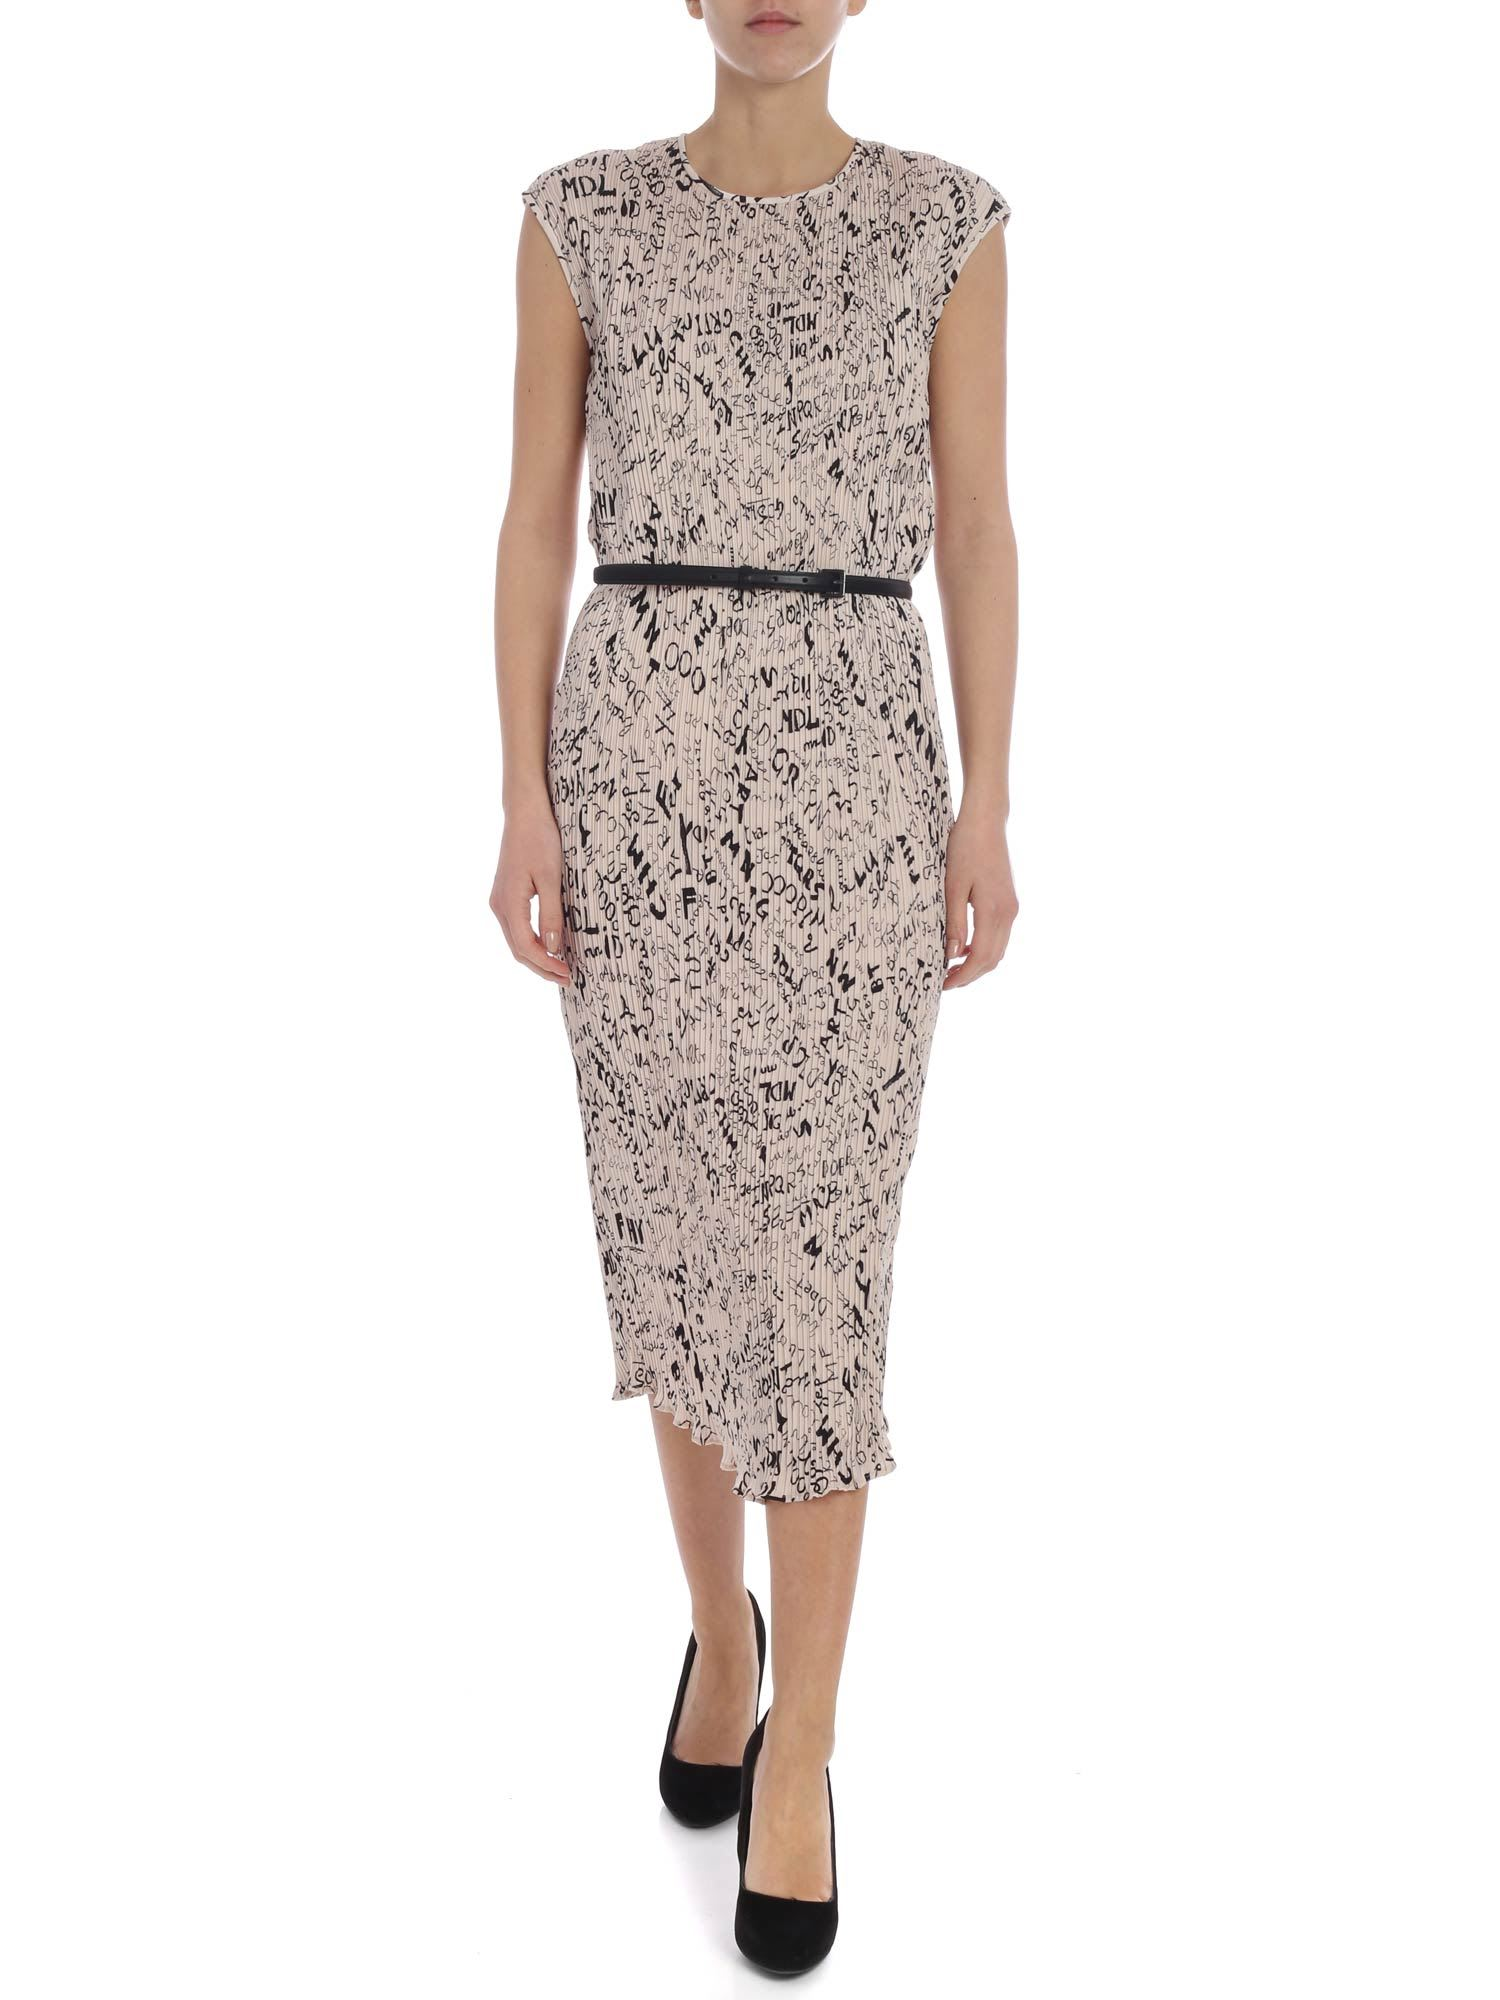 Max Mara – Rino Dress